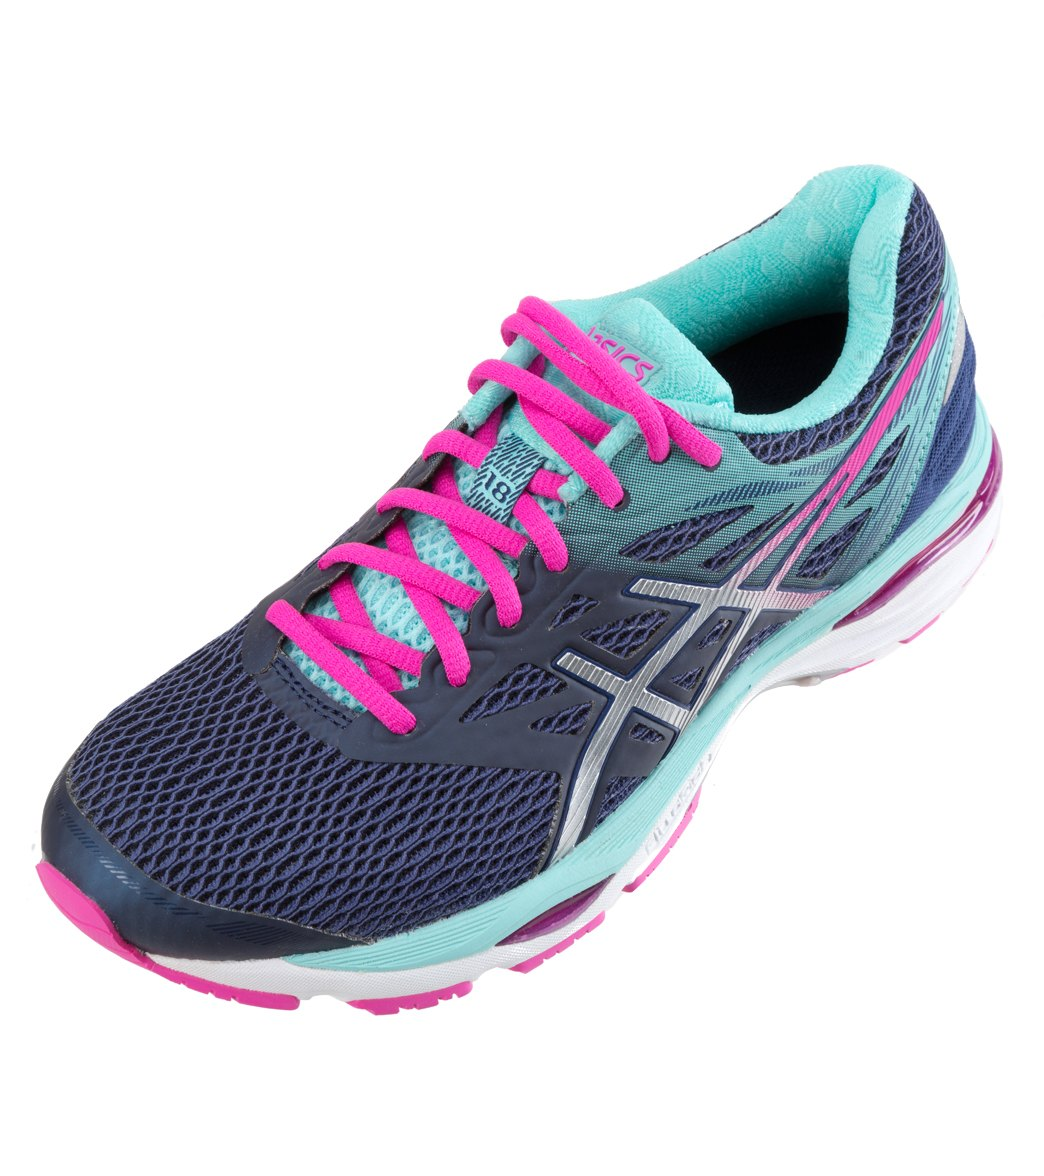 Asics Women's GEL-Cumulus 18 Running Shoes at SwimOutlet.com - Free Shipping